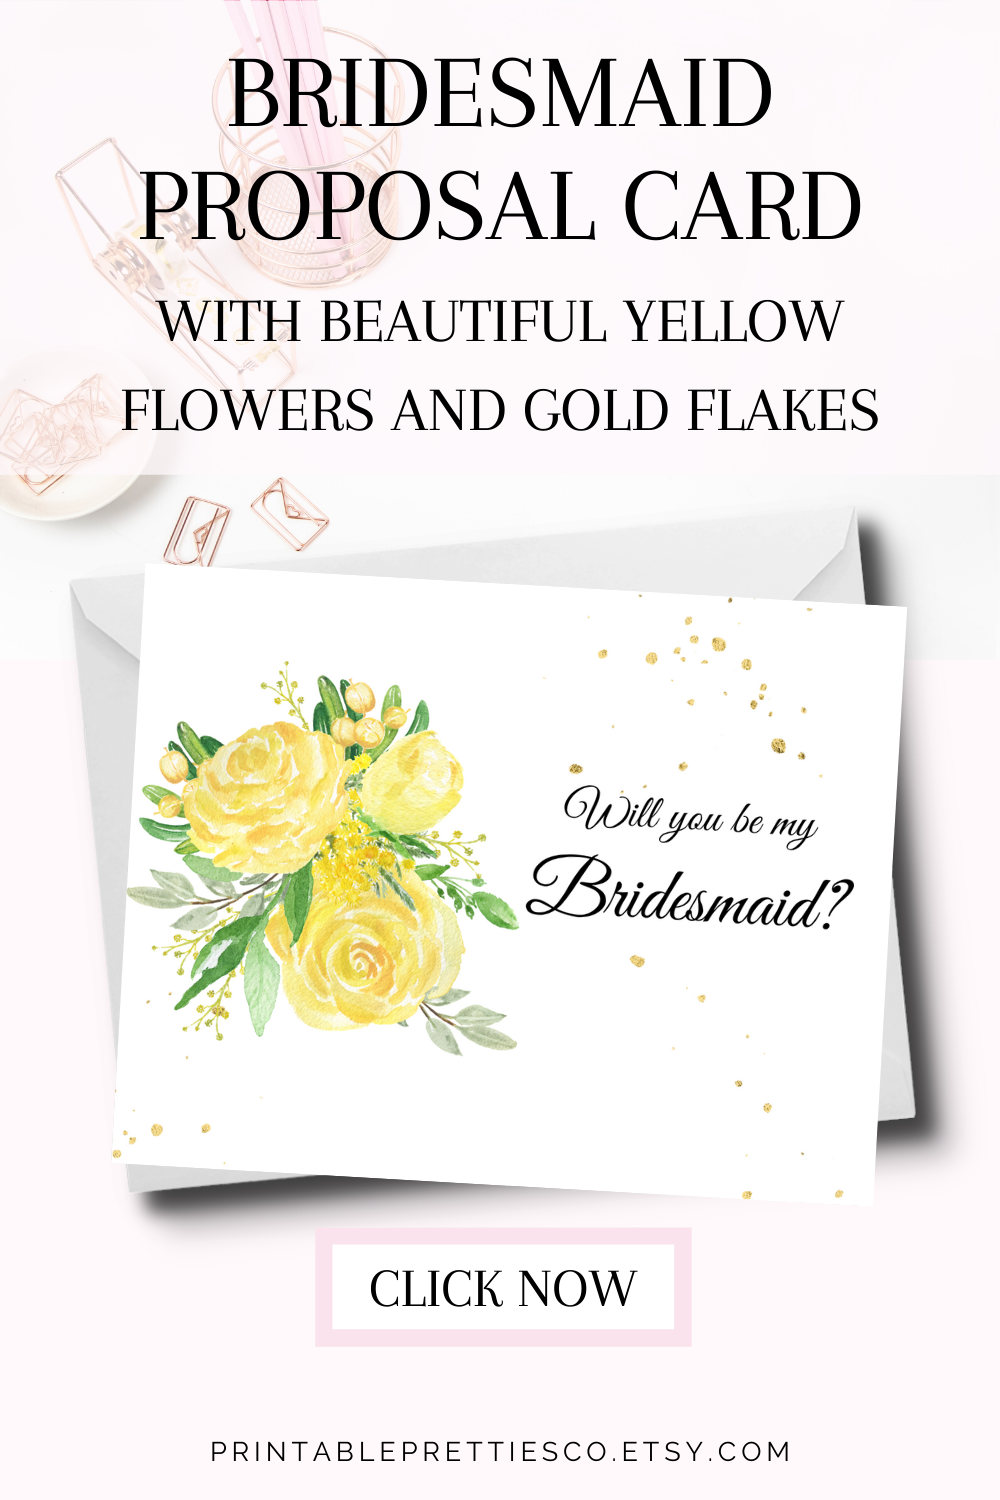 Bridesmaid Proposal Card With Beautiful Yellow Flowers And Elegant Gold Flakes Bridesmaid Proposal Cards Bridesmaid Proposal Budget Bridesmaid Gifts